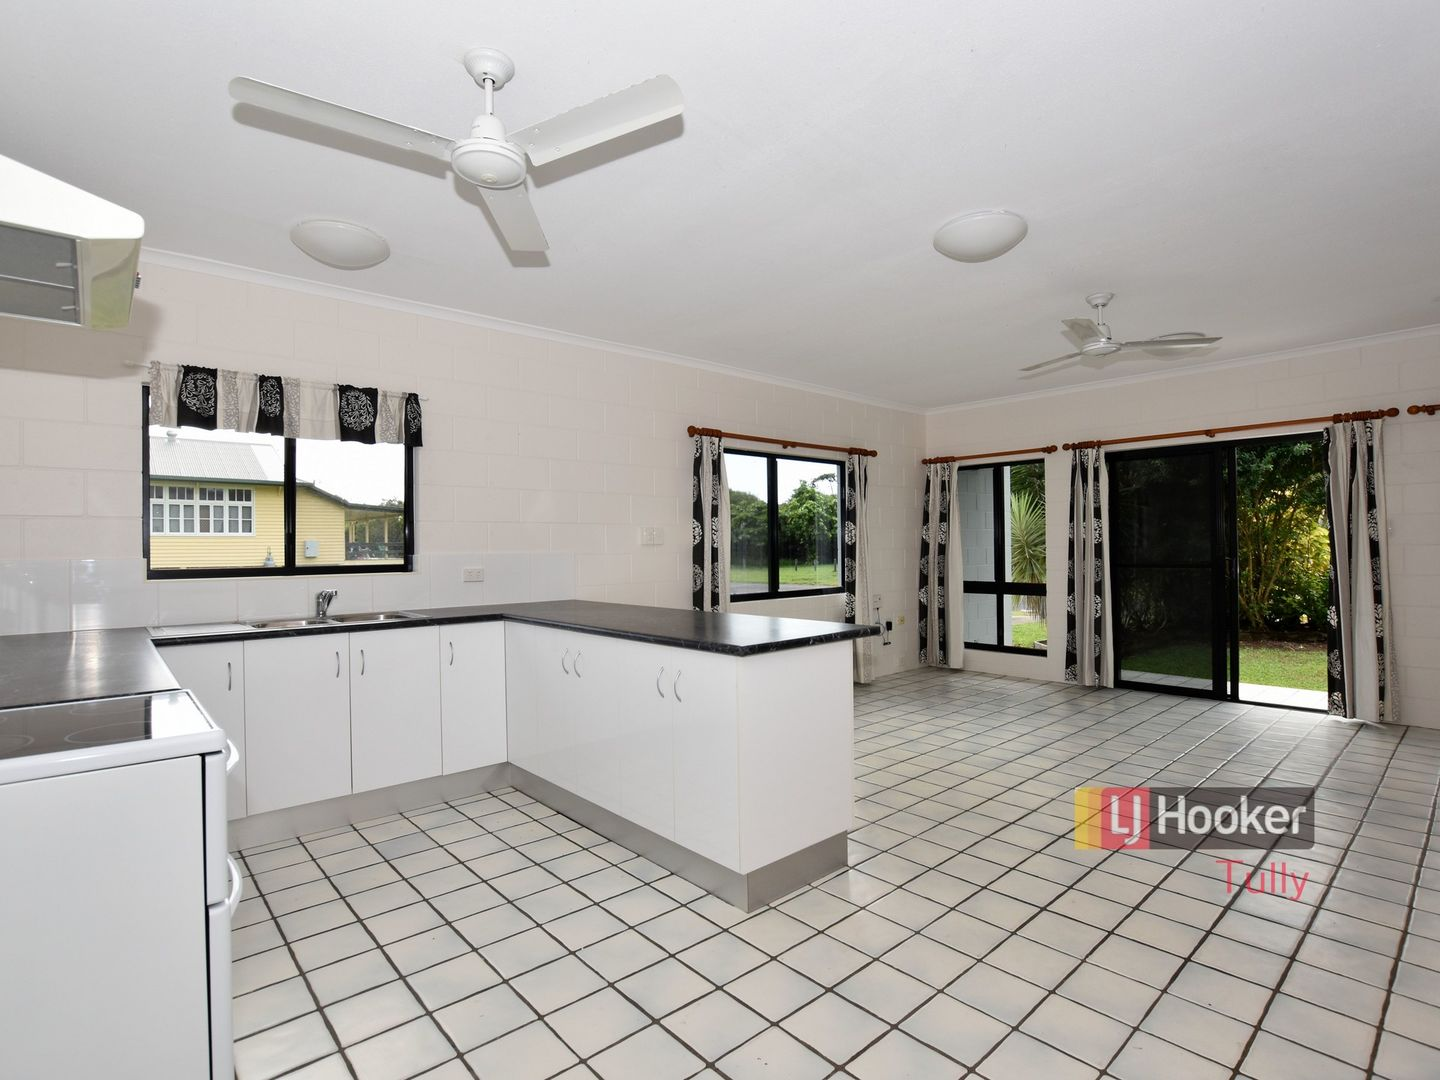 1/117 Taylor Street, Tully Heads QLD 4854, Image 1